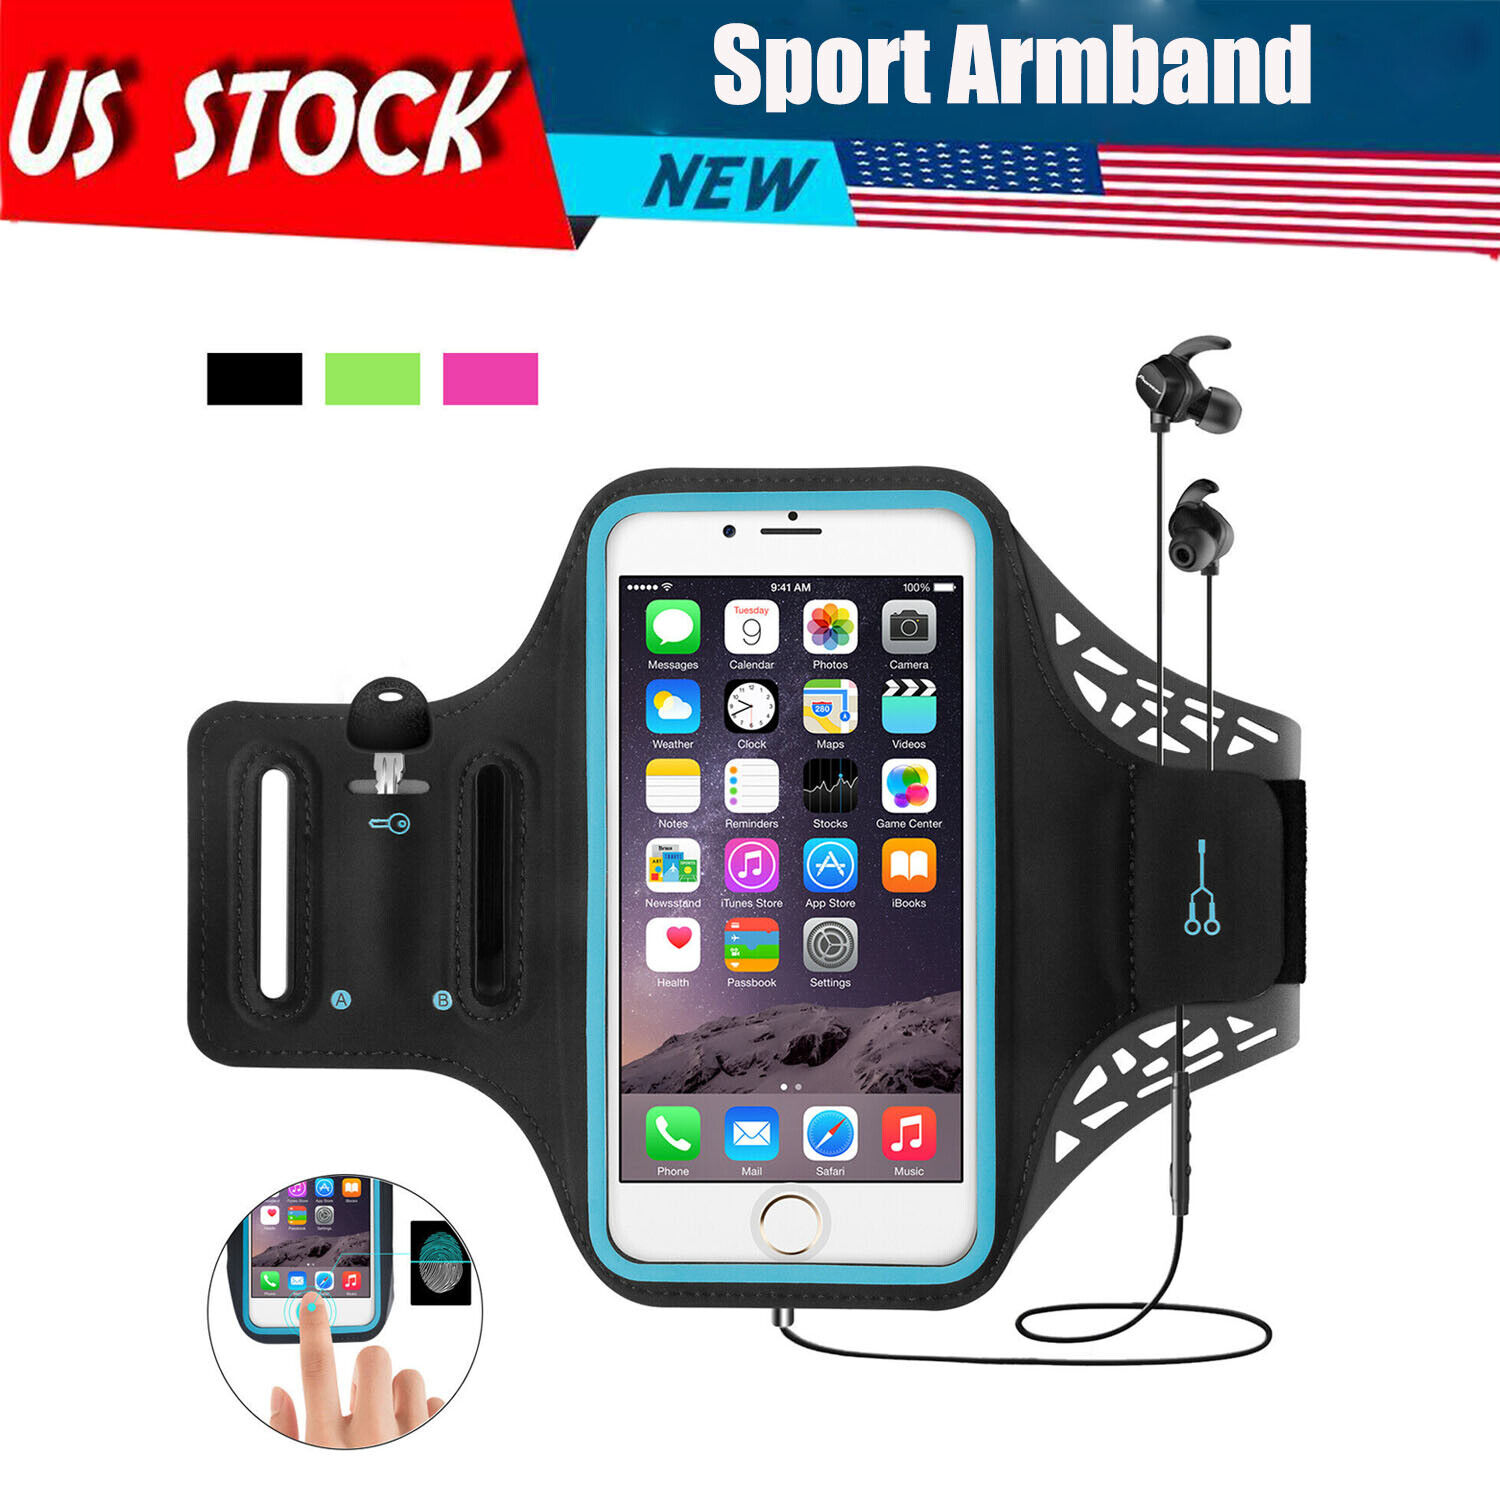 Armband For Samsung Phone Holder Gym Running Sports Jogging Exercise Bag Case Armbands